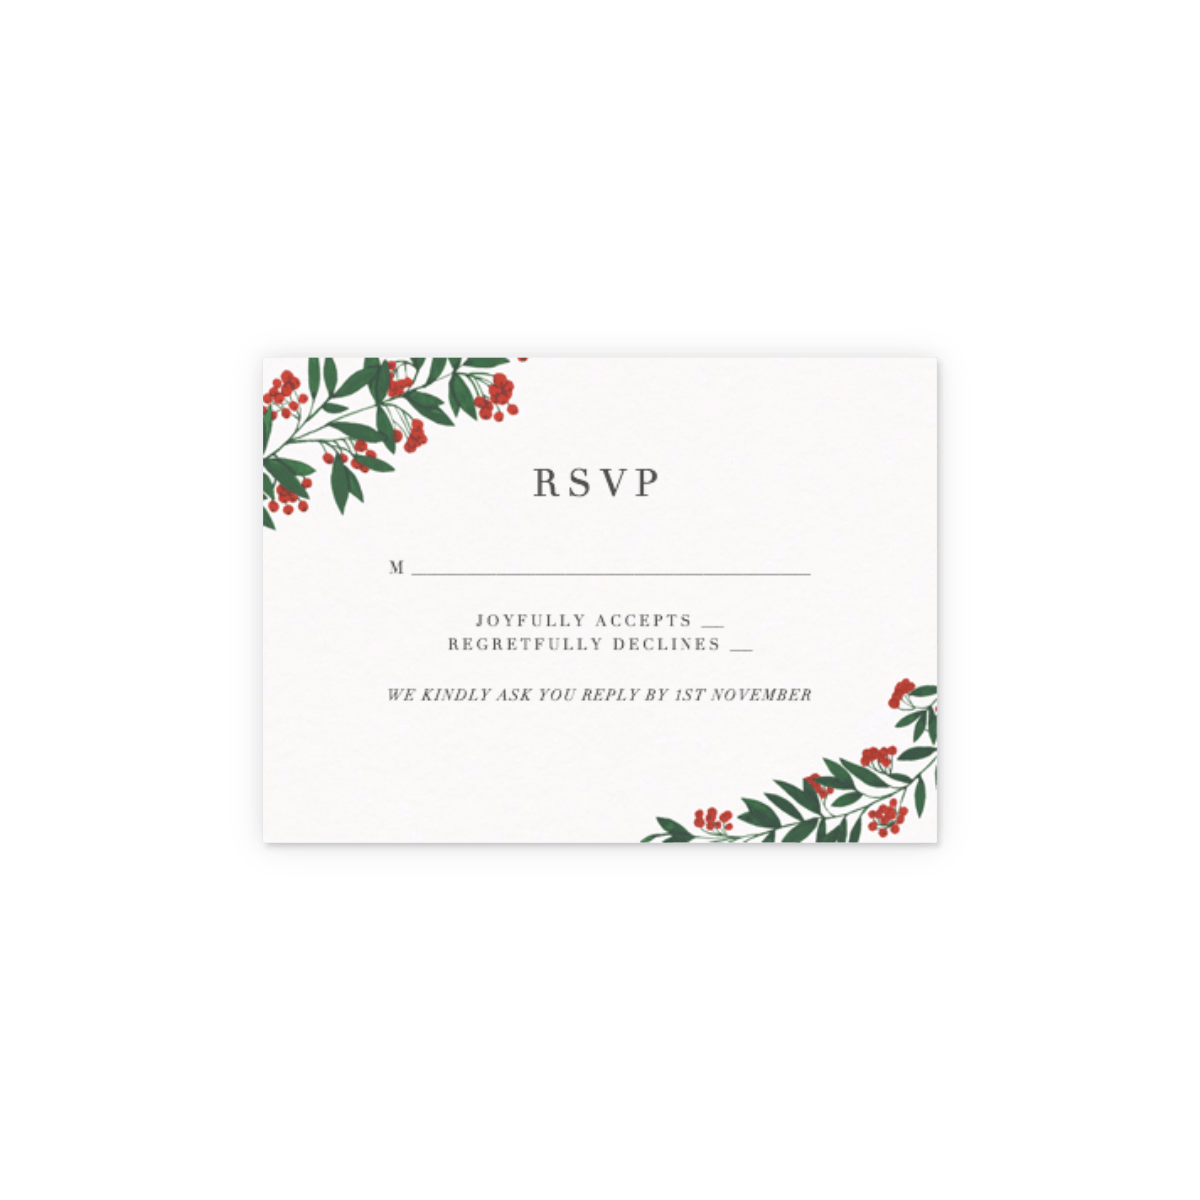 Https%3a%2f%2fwww.papier.com%2fproduct image%2f10321%2f13%2fwinter red berries 2633 rsvp 1472122031.png?ixlib=rb 1.1